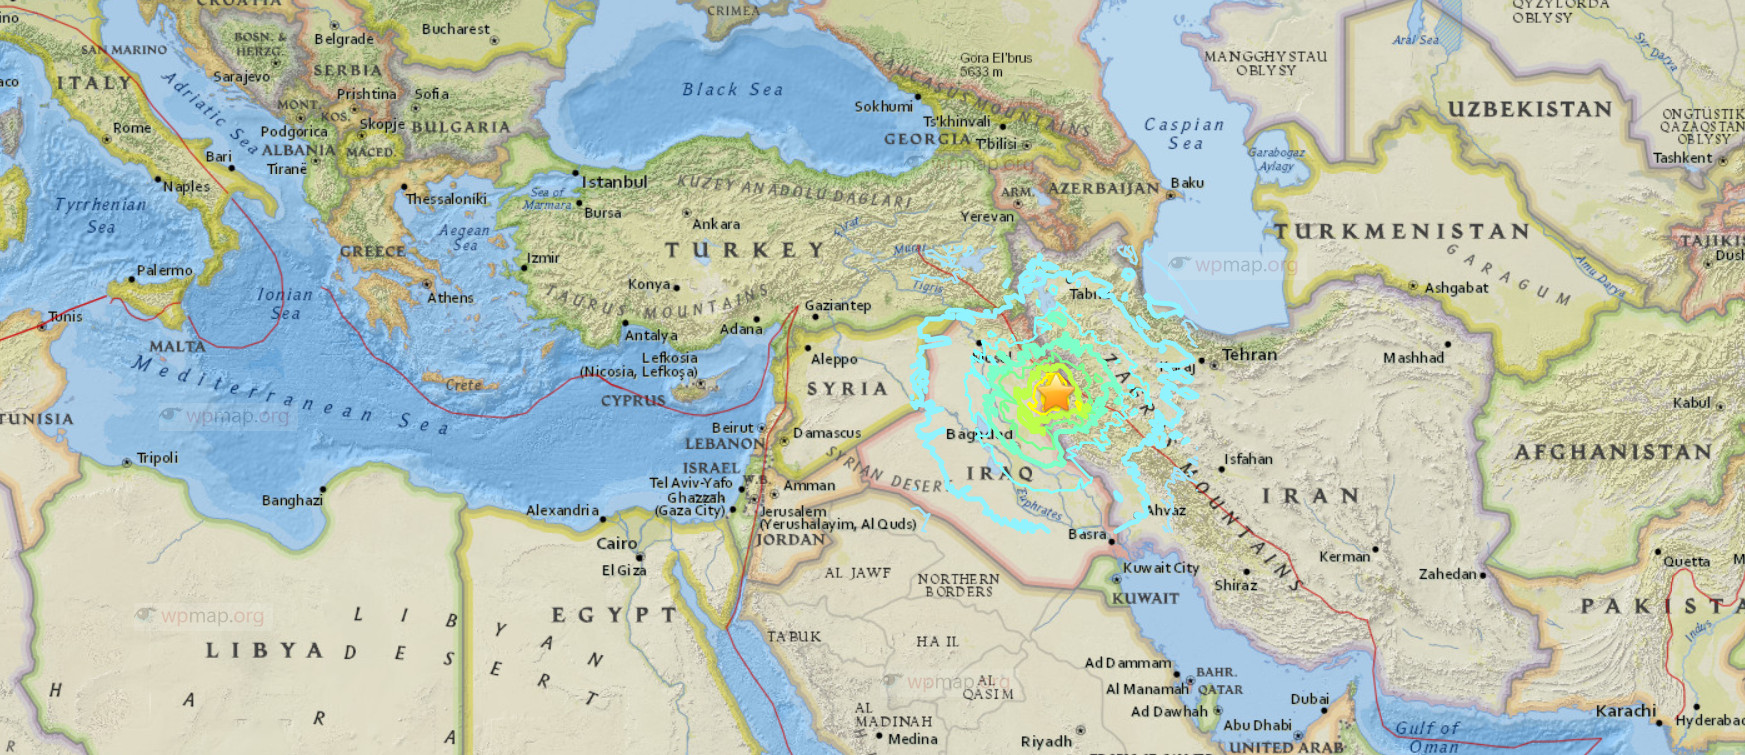 Sulaymaniyah earthquake map